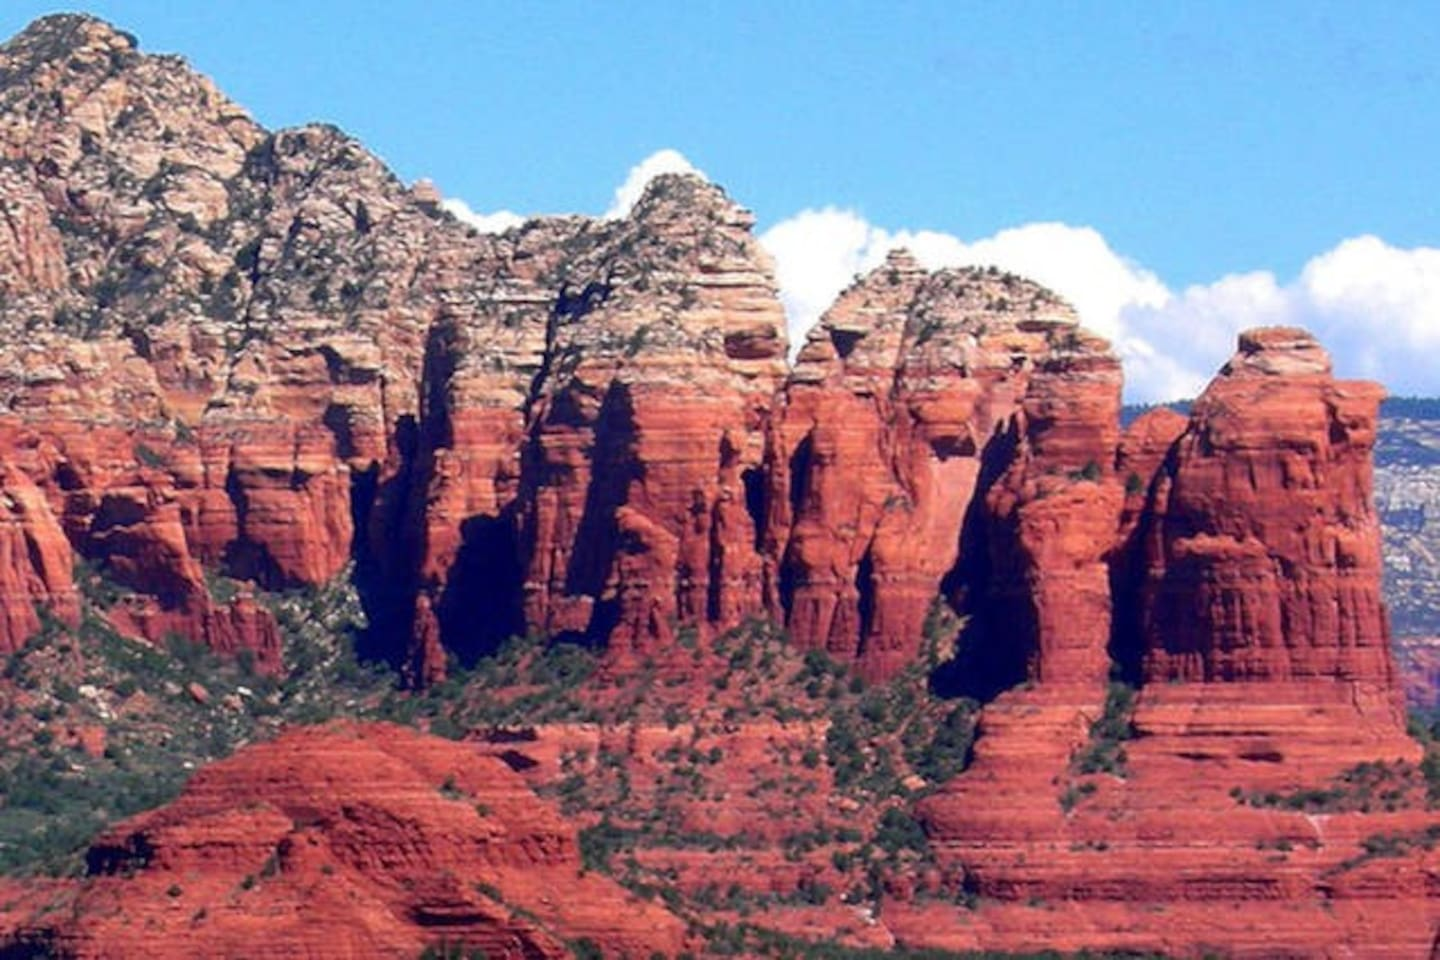 Sedona Red Rock Views from the porch